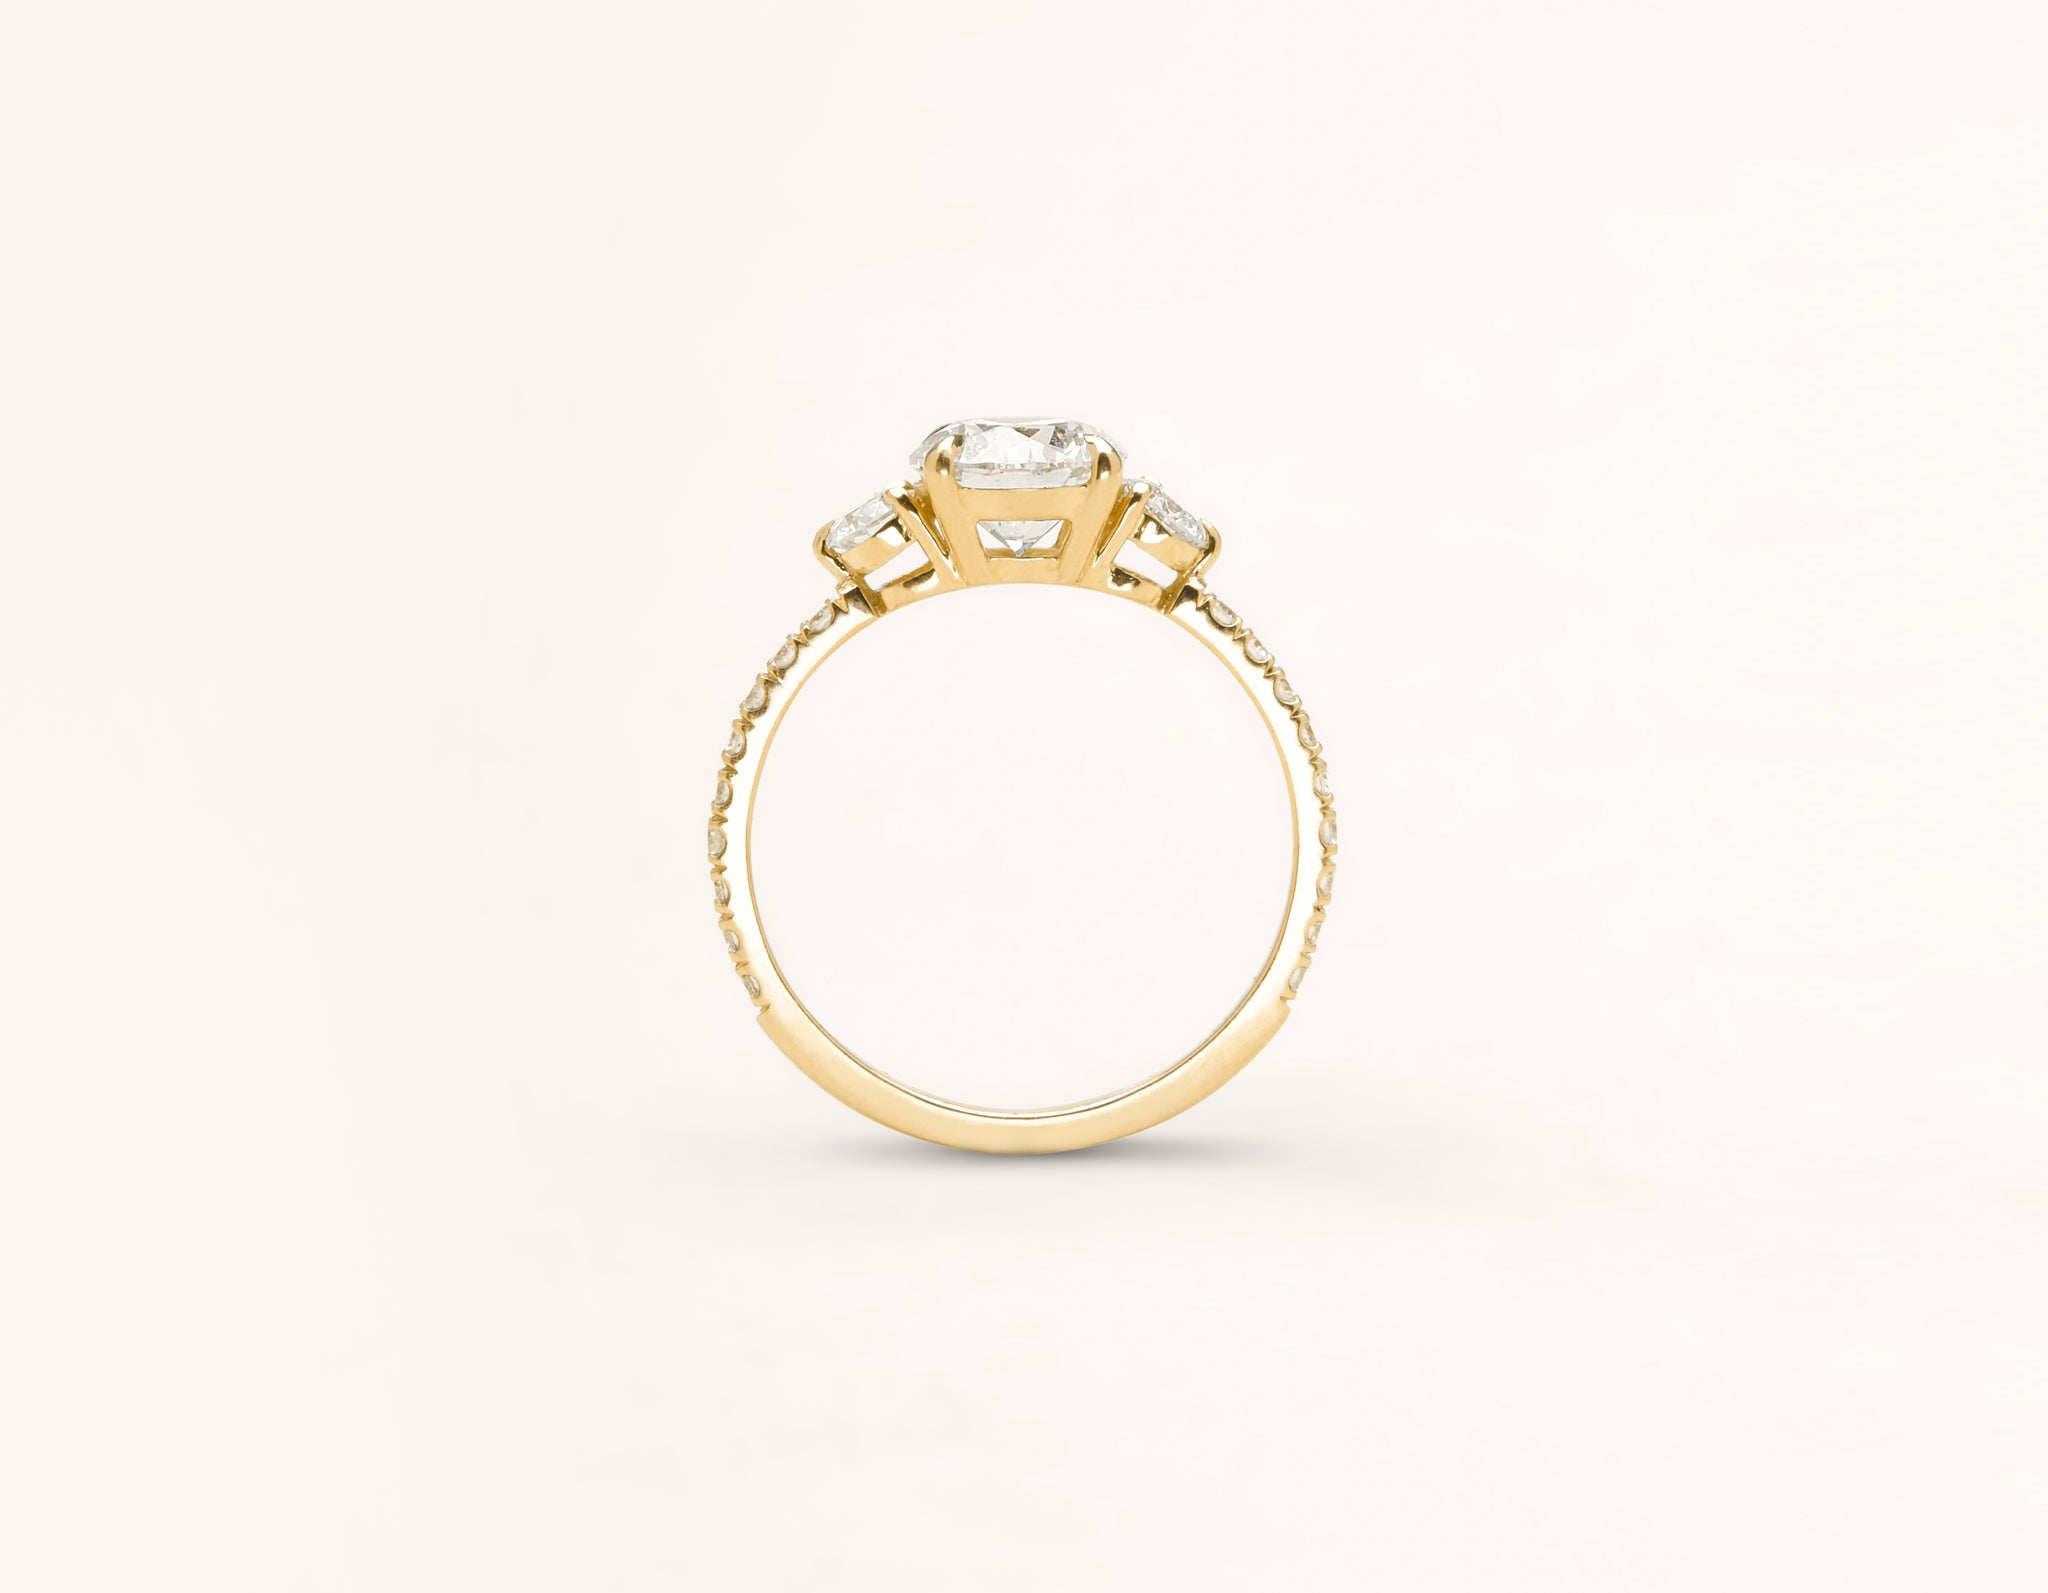 Vrai and Oro classic The Three Stone diamond pave engagement ring 18k solid yellow gold sustainable jewelry